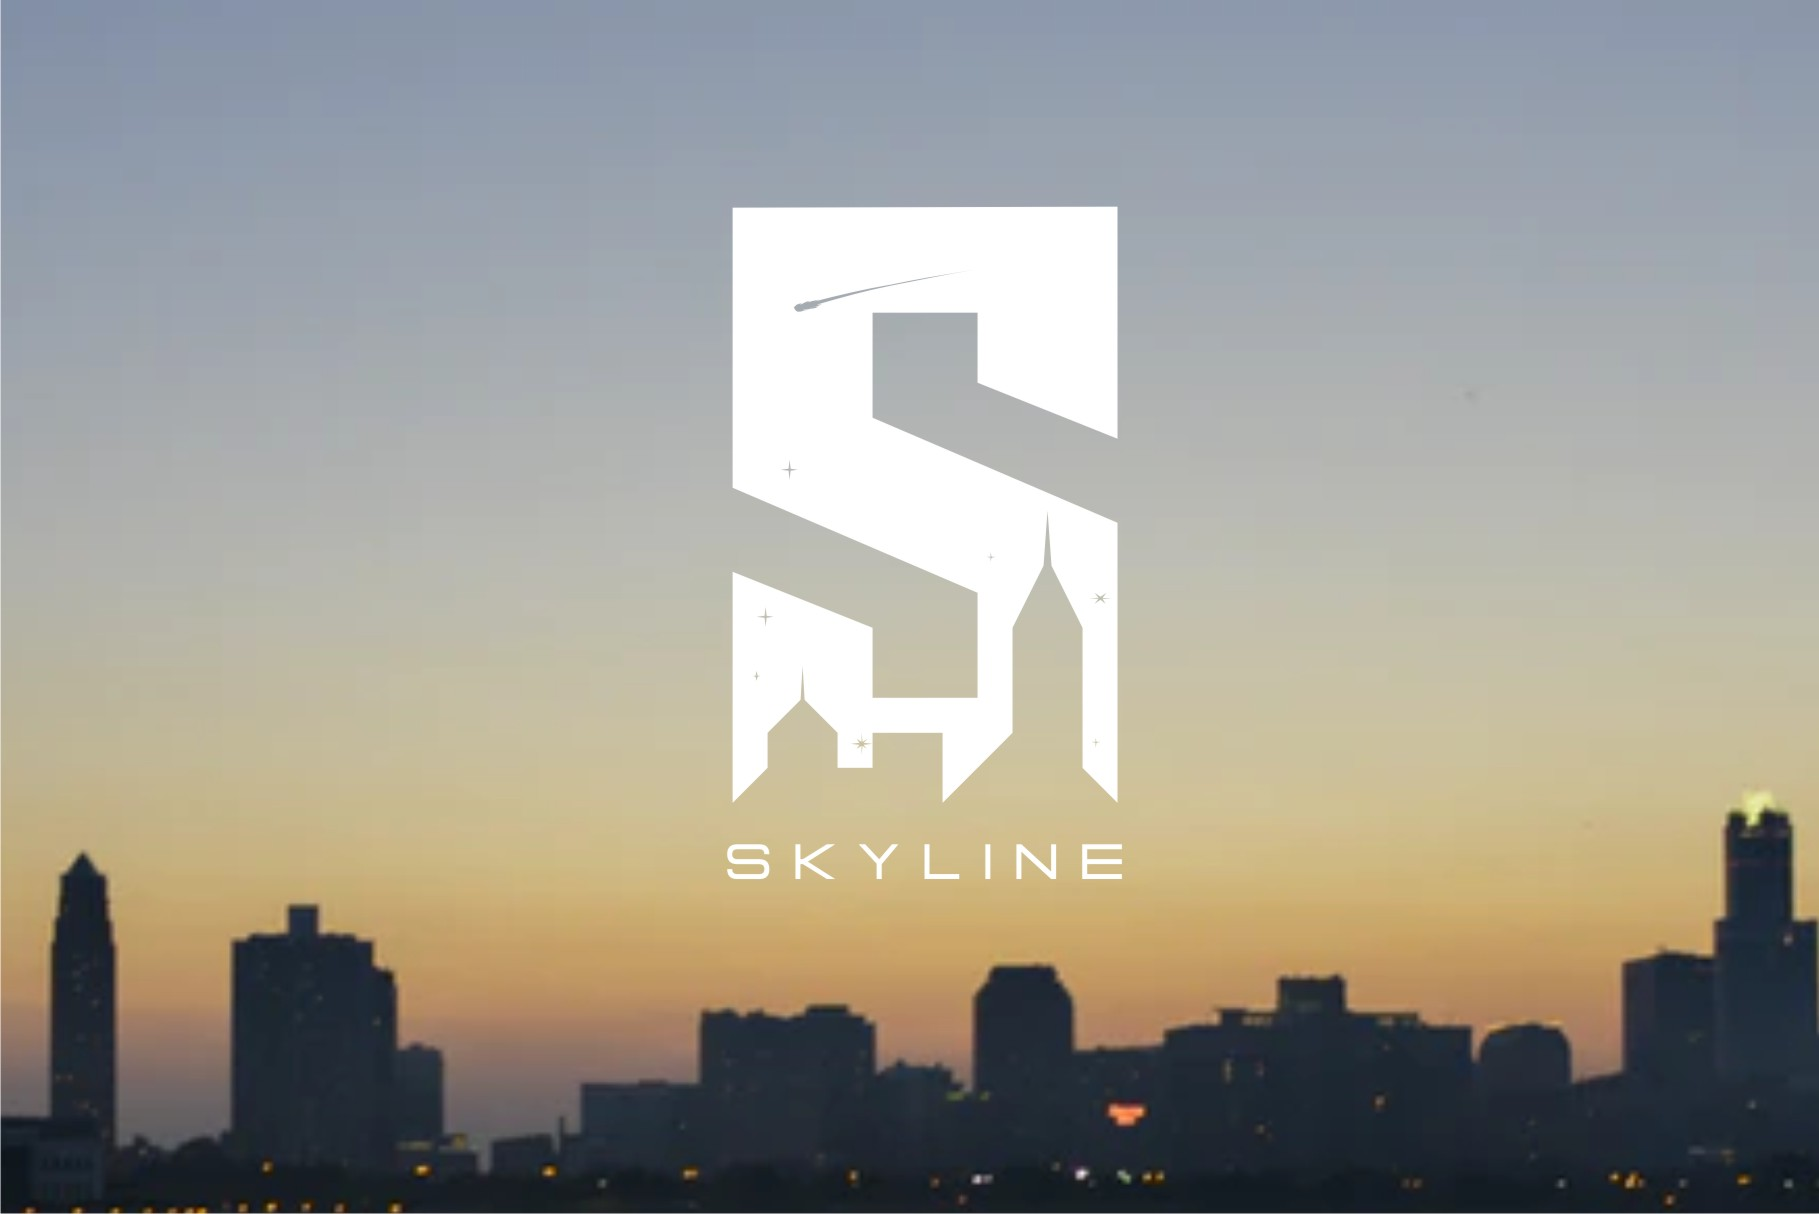 SKYLINE example image 1